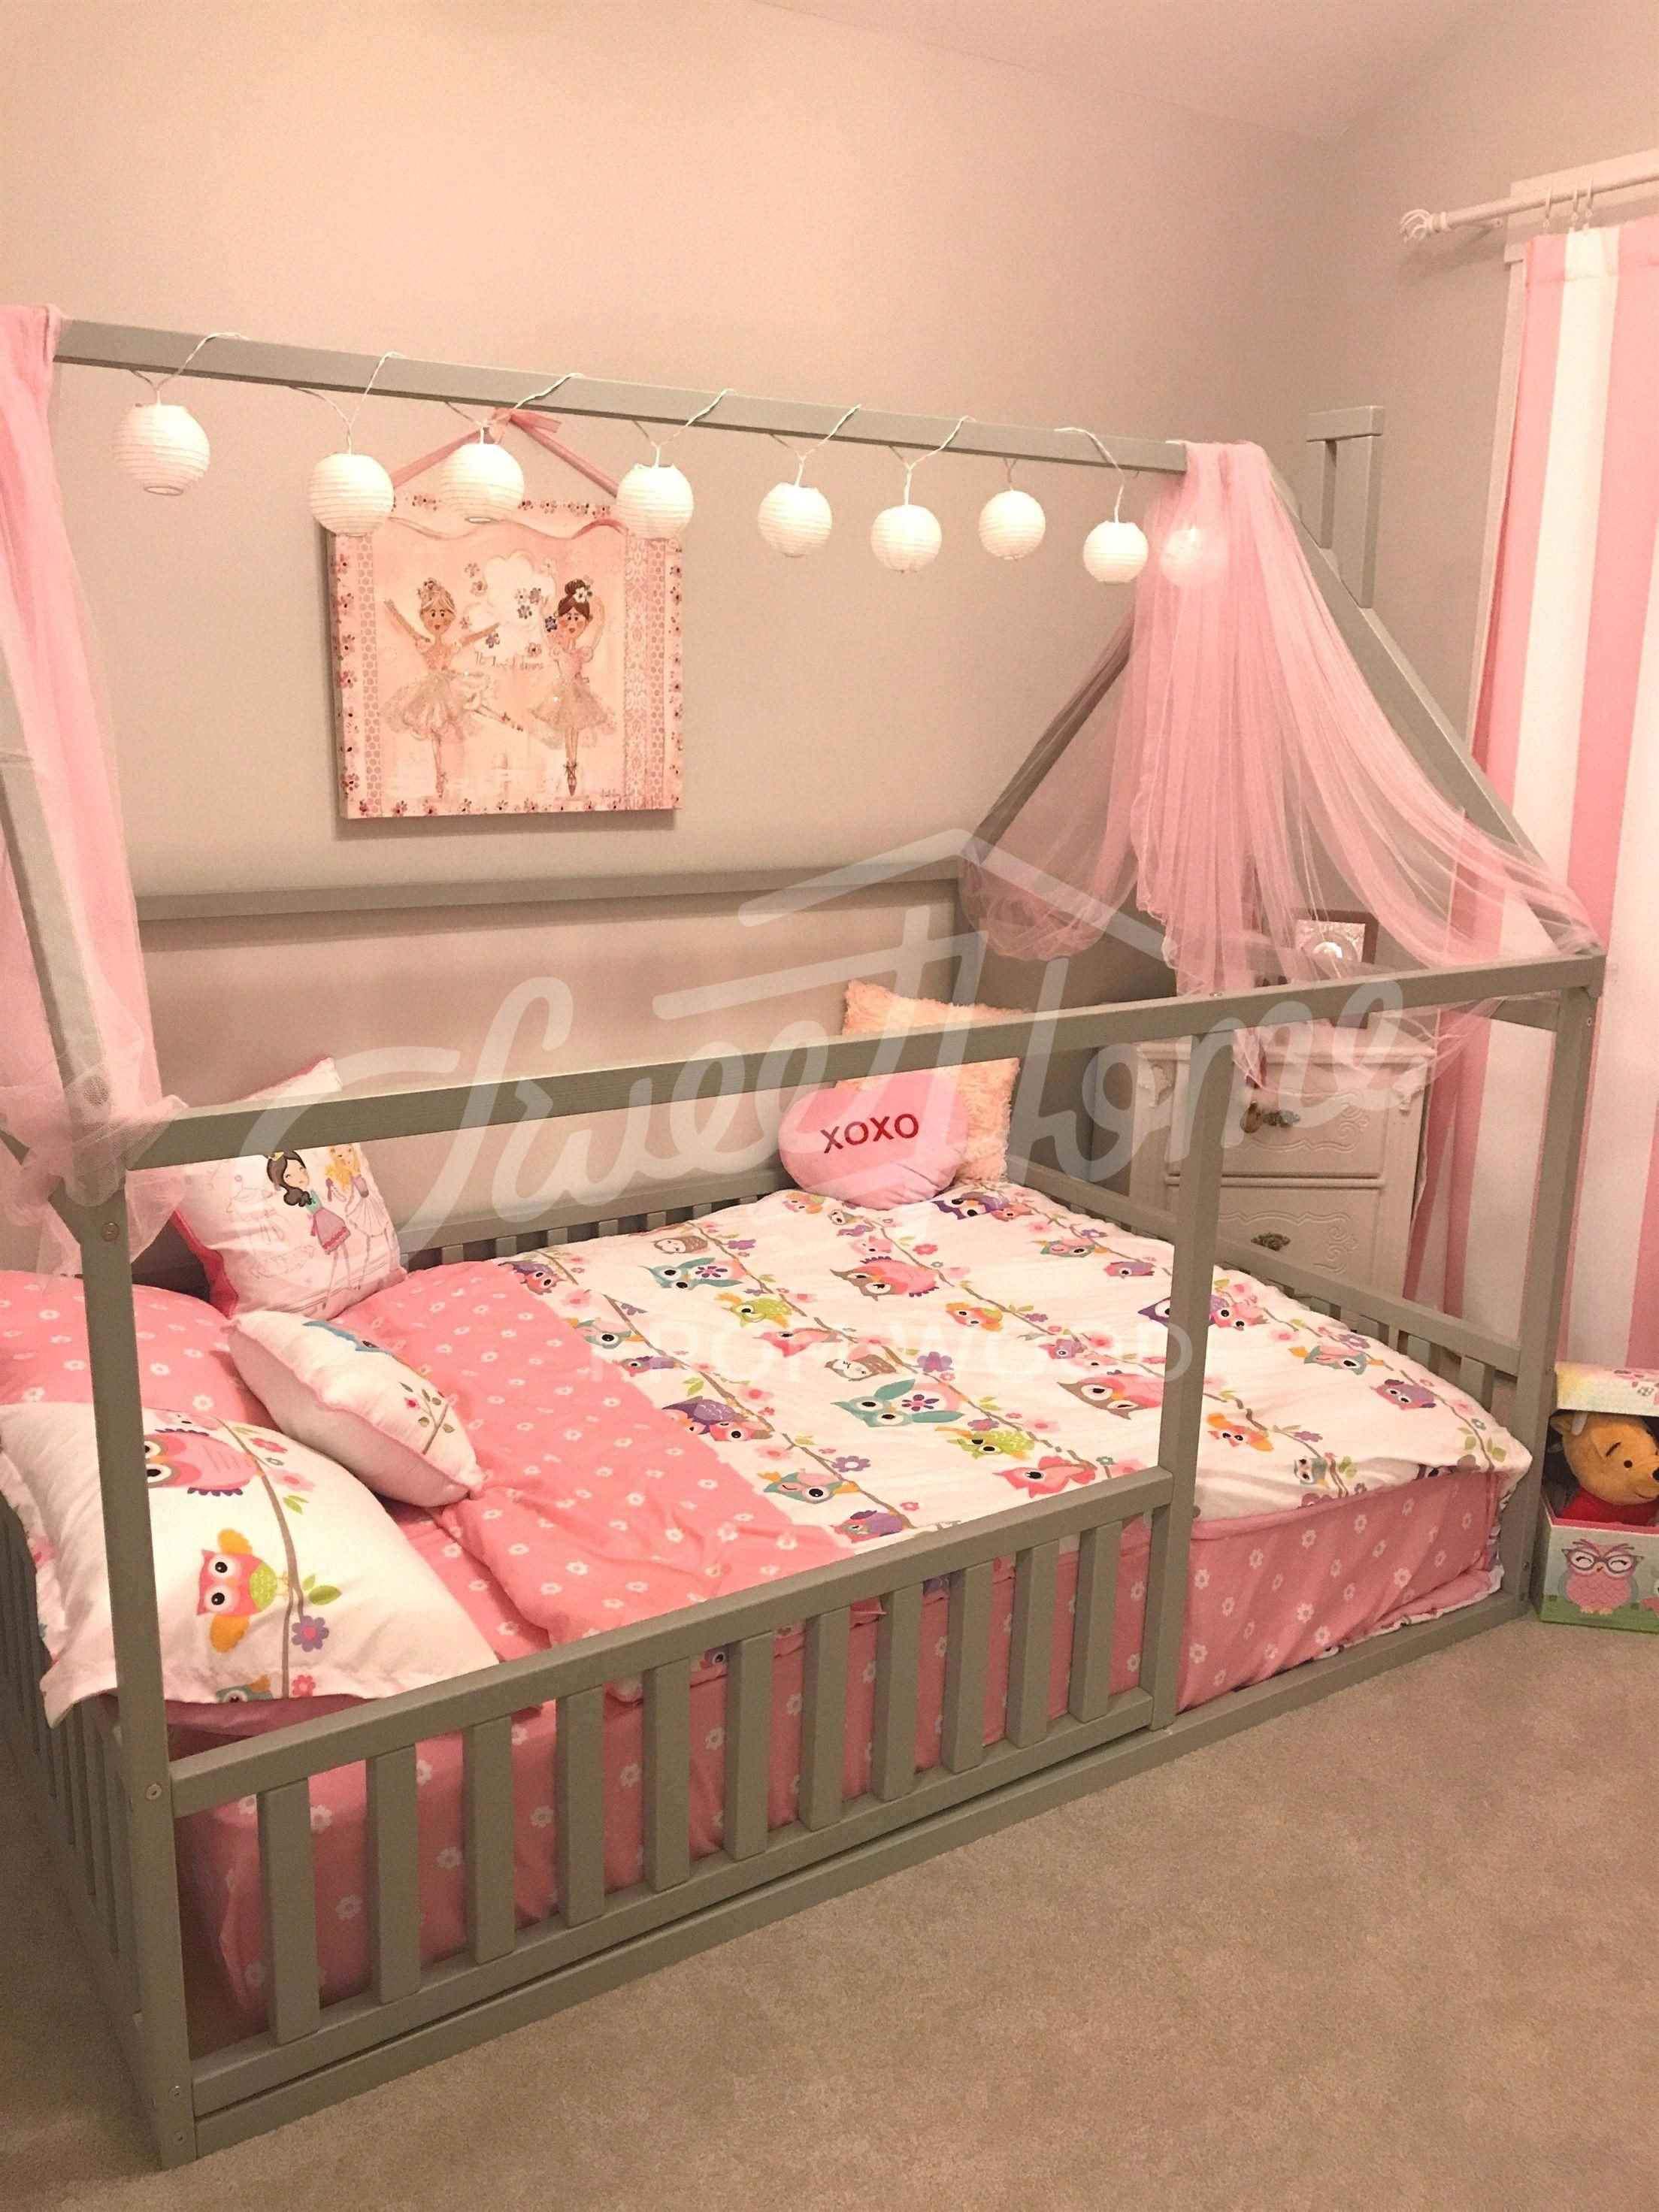 Girls toddler Bedroom Set Awesome toddler Furniture Teepee Kids Home Bed Full Double Size